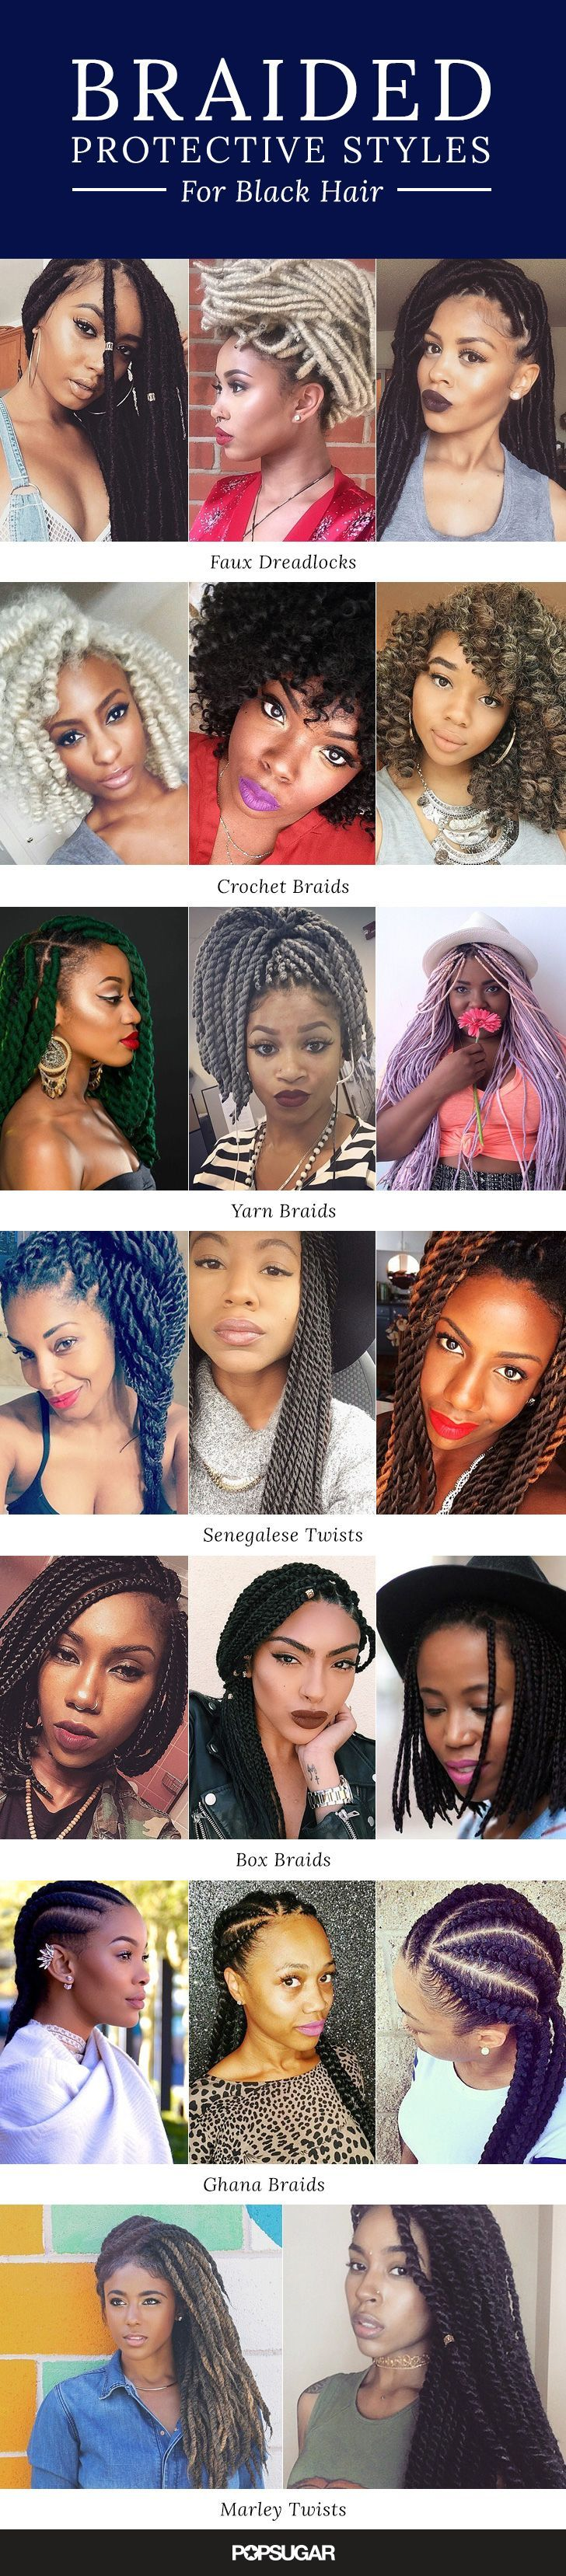 best hair and beauty images on pinterest africans black girls